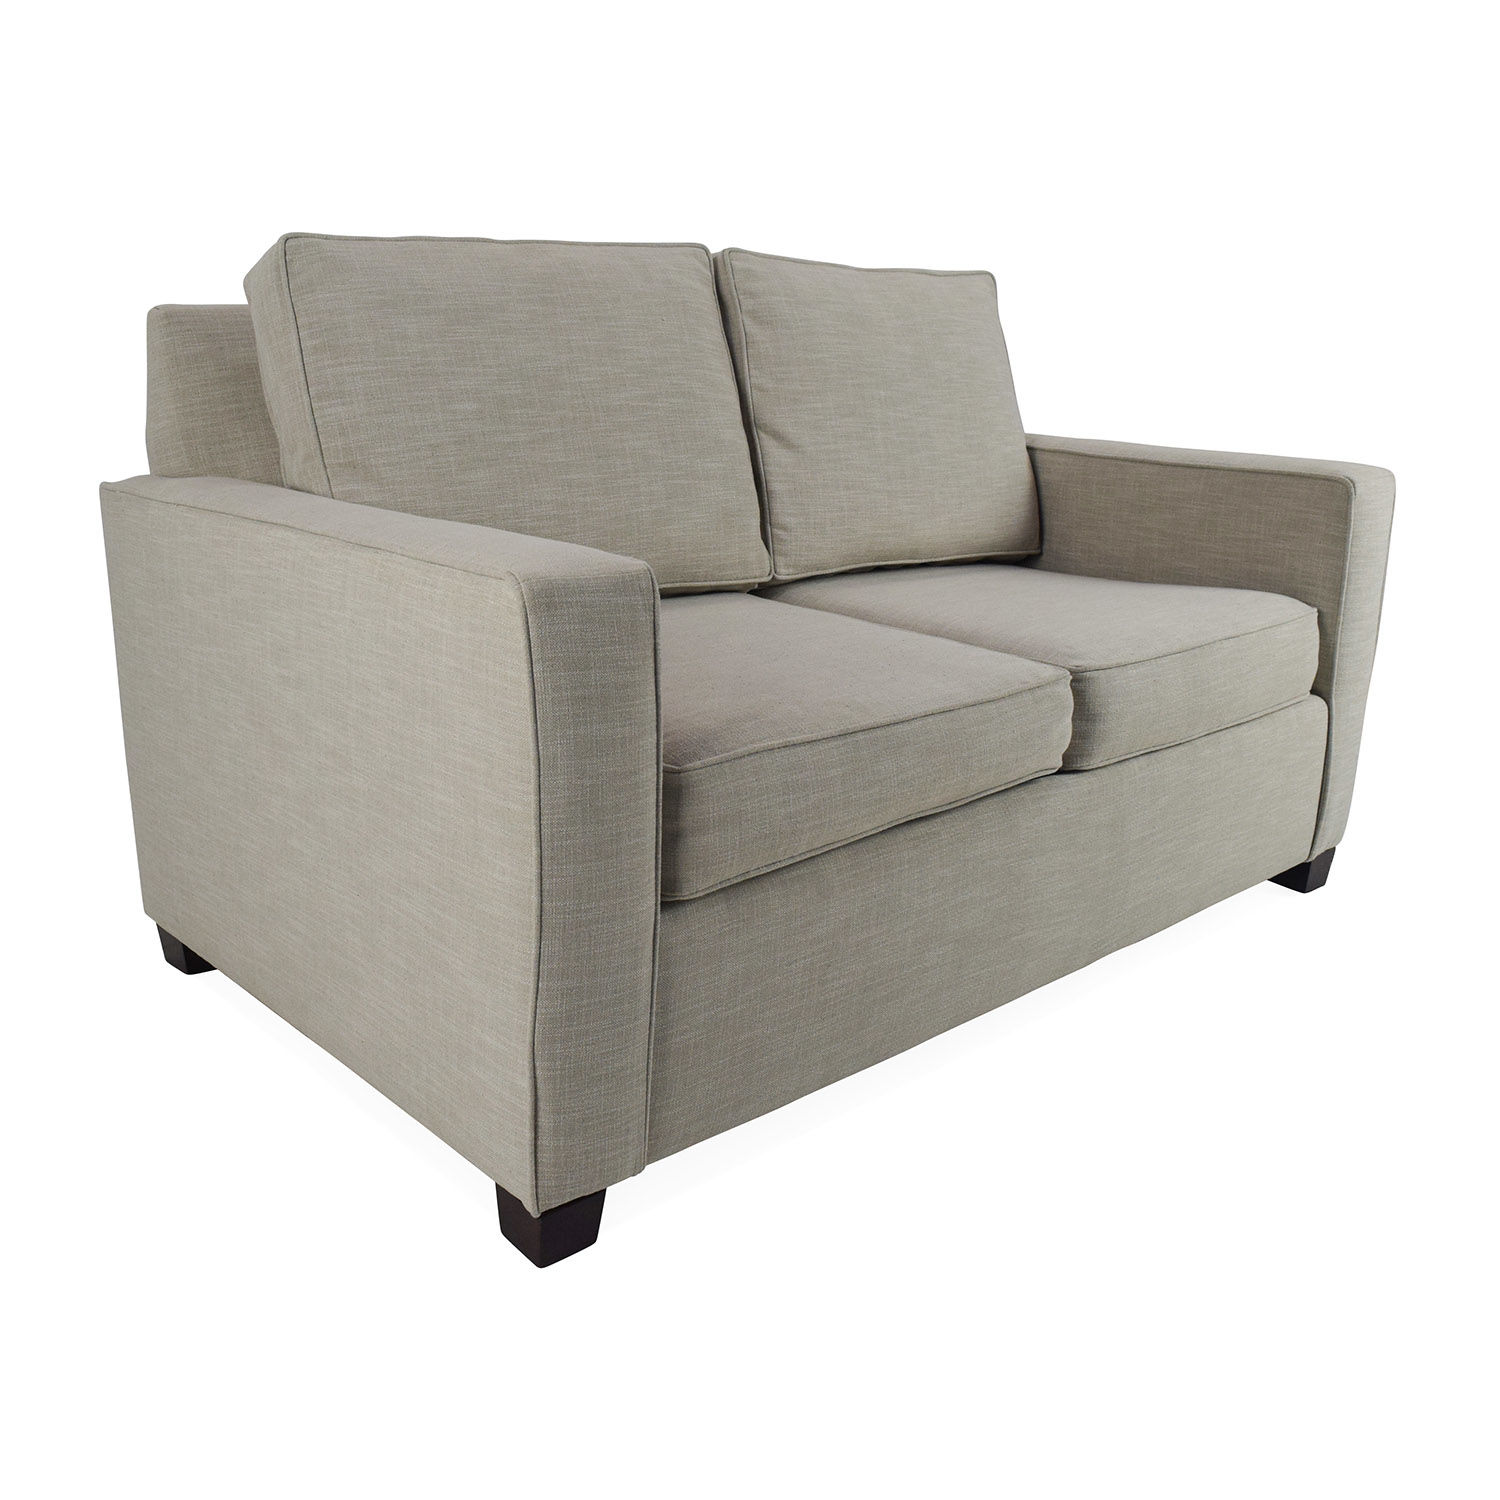 superb west elm sleeper sofa collection-Latest West Elm Sleeper sofa Design